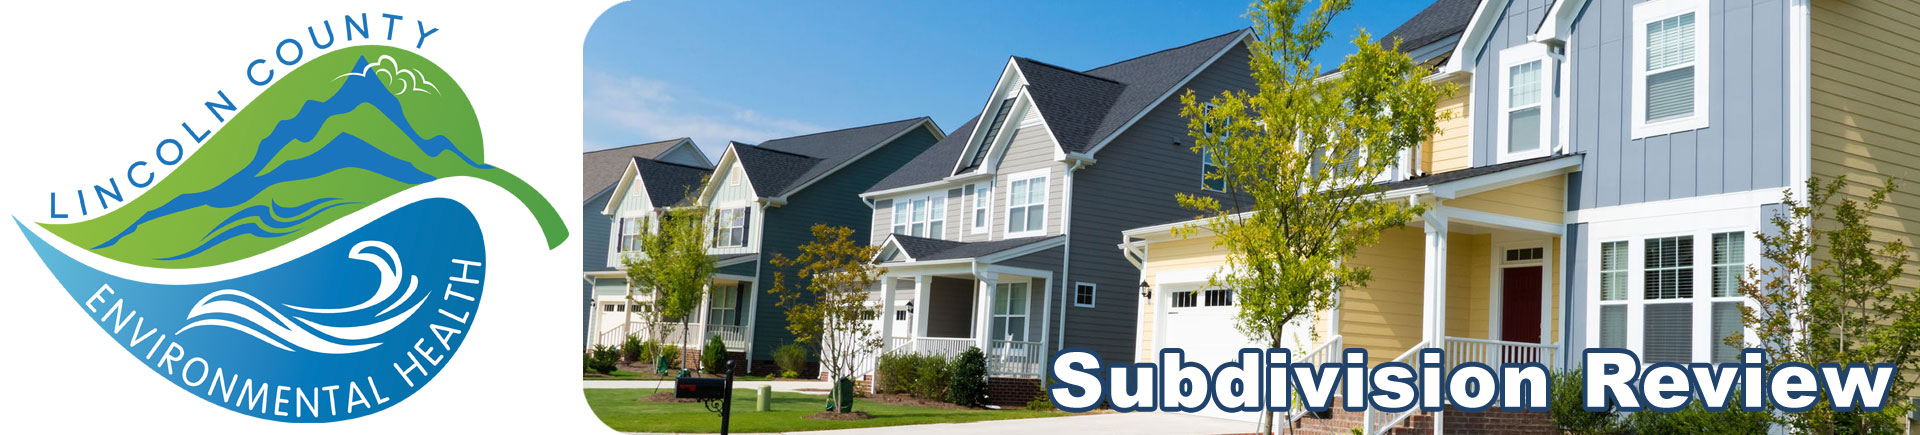 Lincoln County Montana Subdivision Review